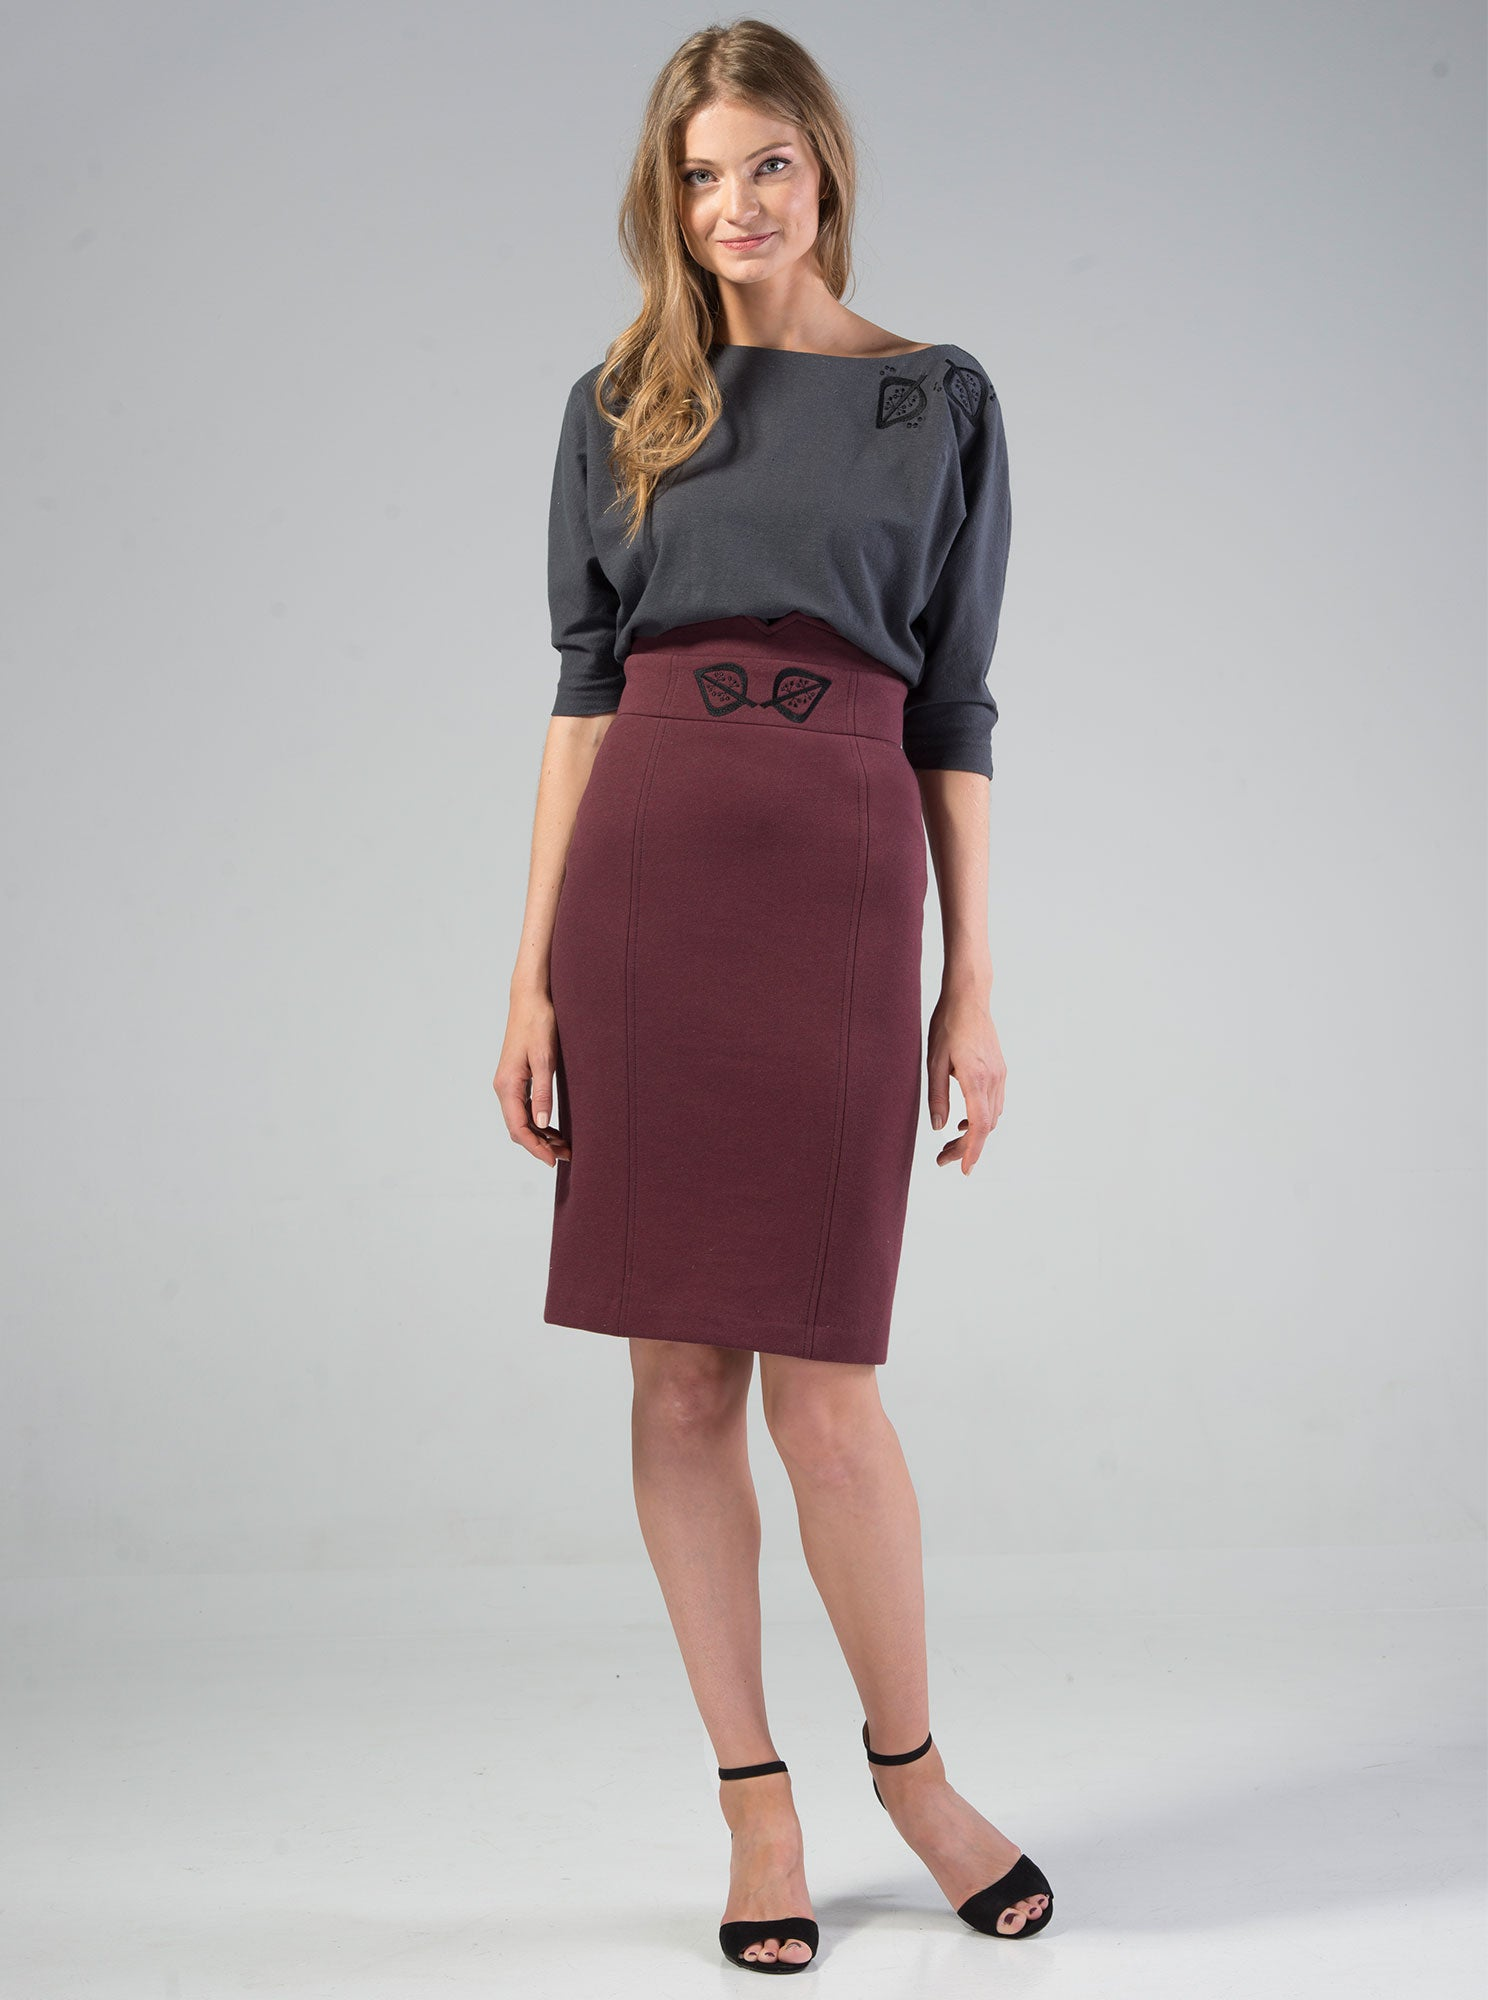 VAIKE Bordeaux Red Organic Cotton Embroidered Skirt